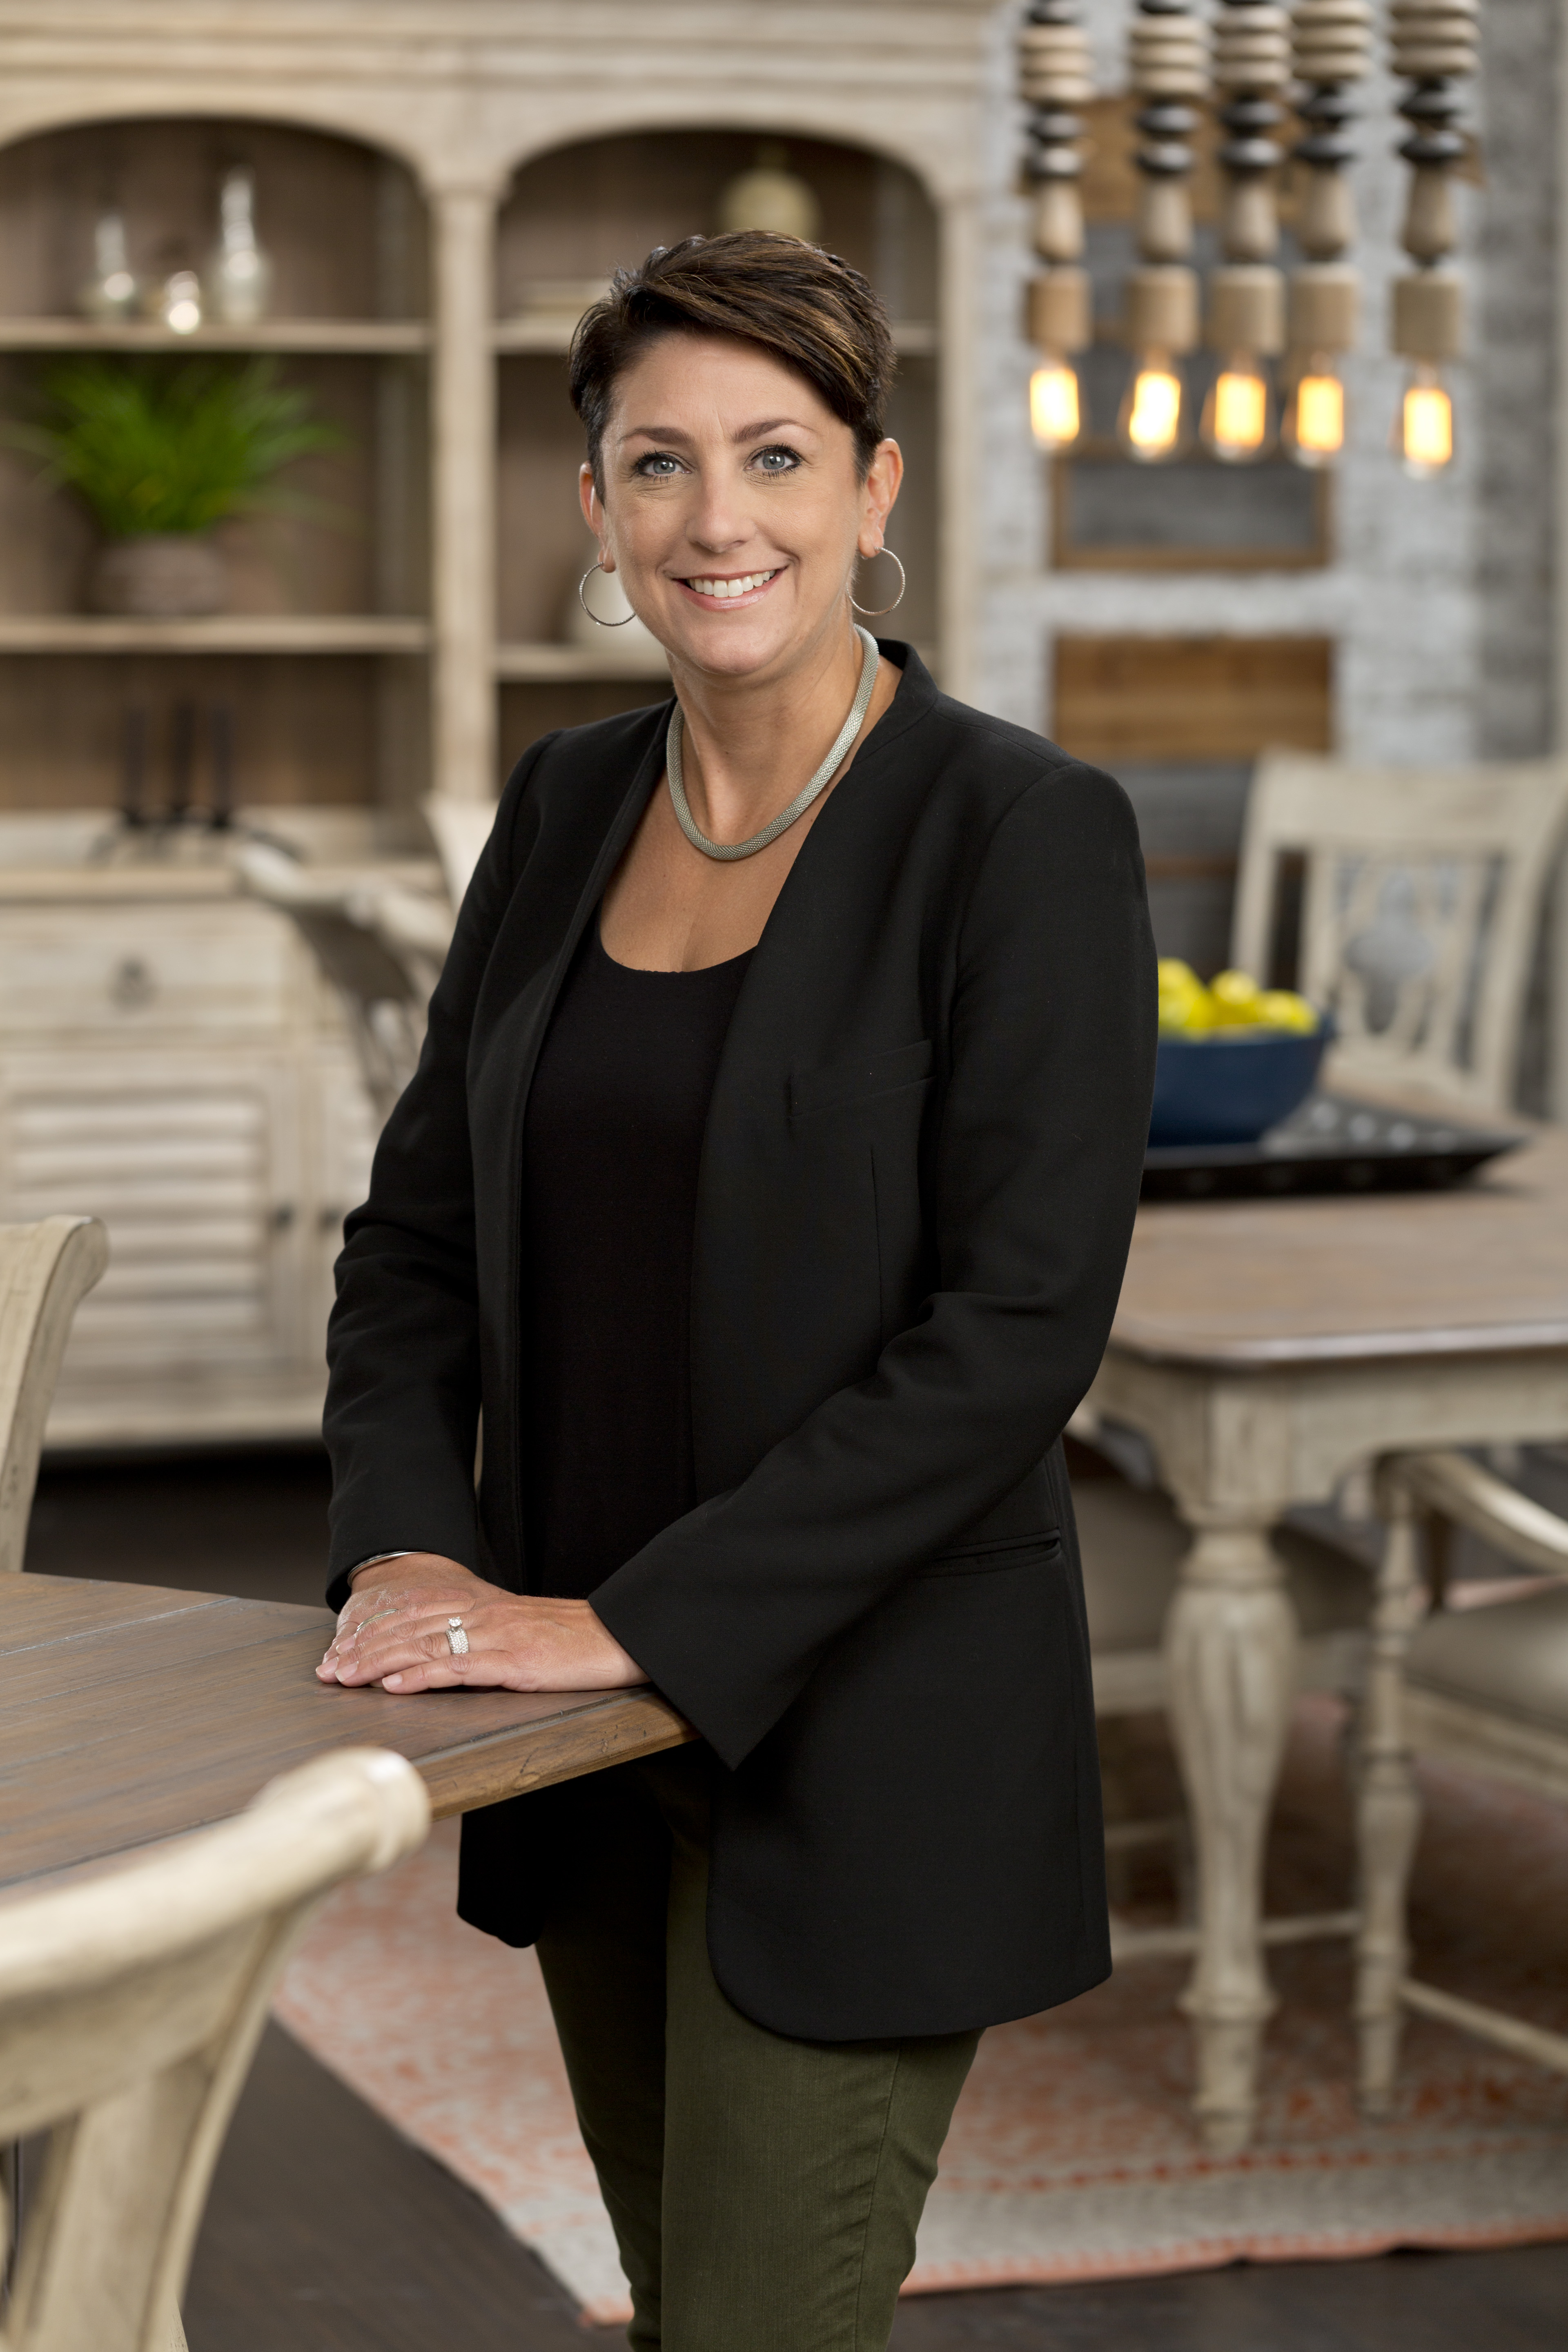 Star Furniture A Berkshire Hathaway Division Retailer Based In Houston Has Named Alicia Macha To The Position Of Er Occasional